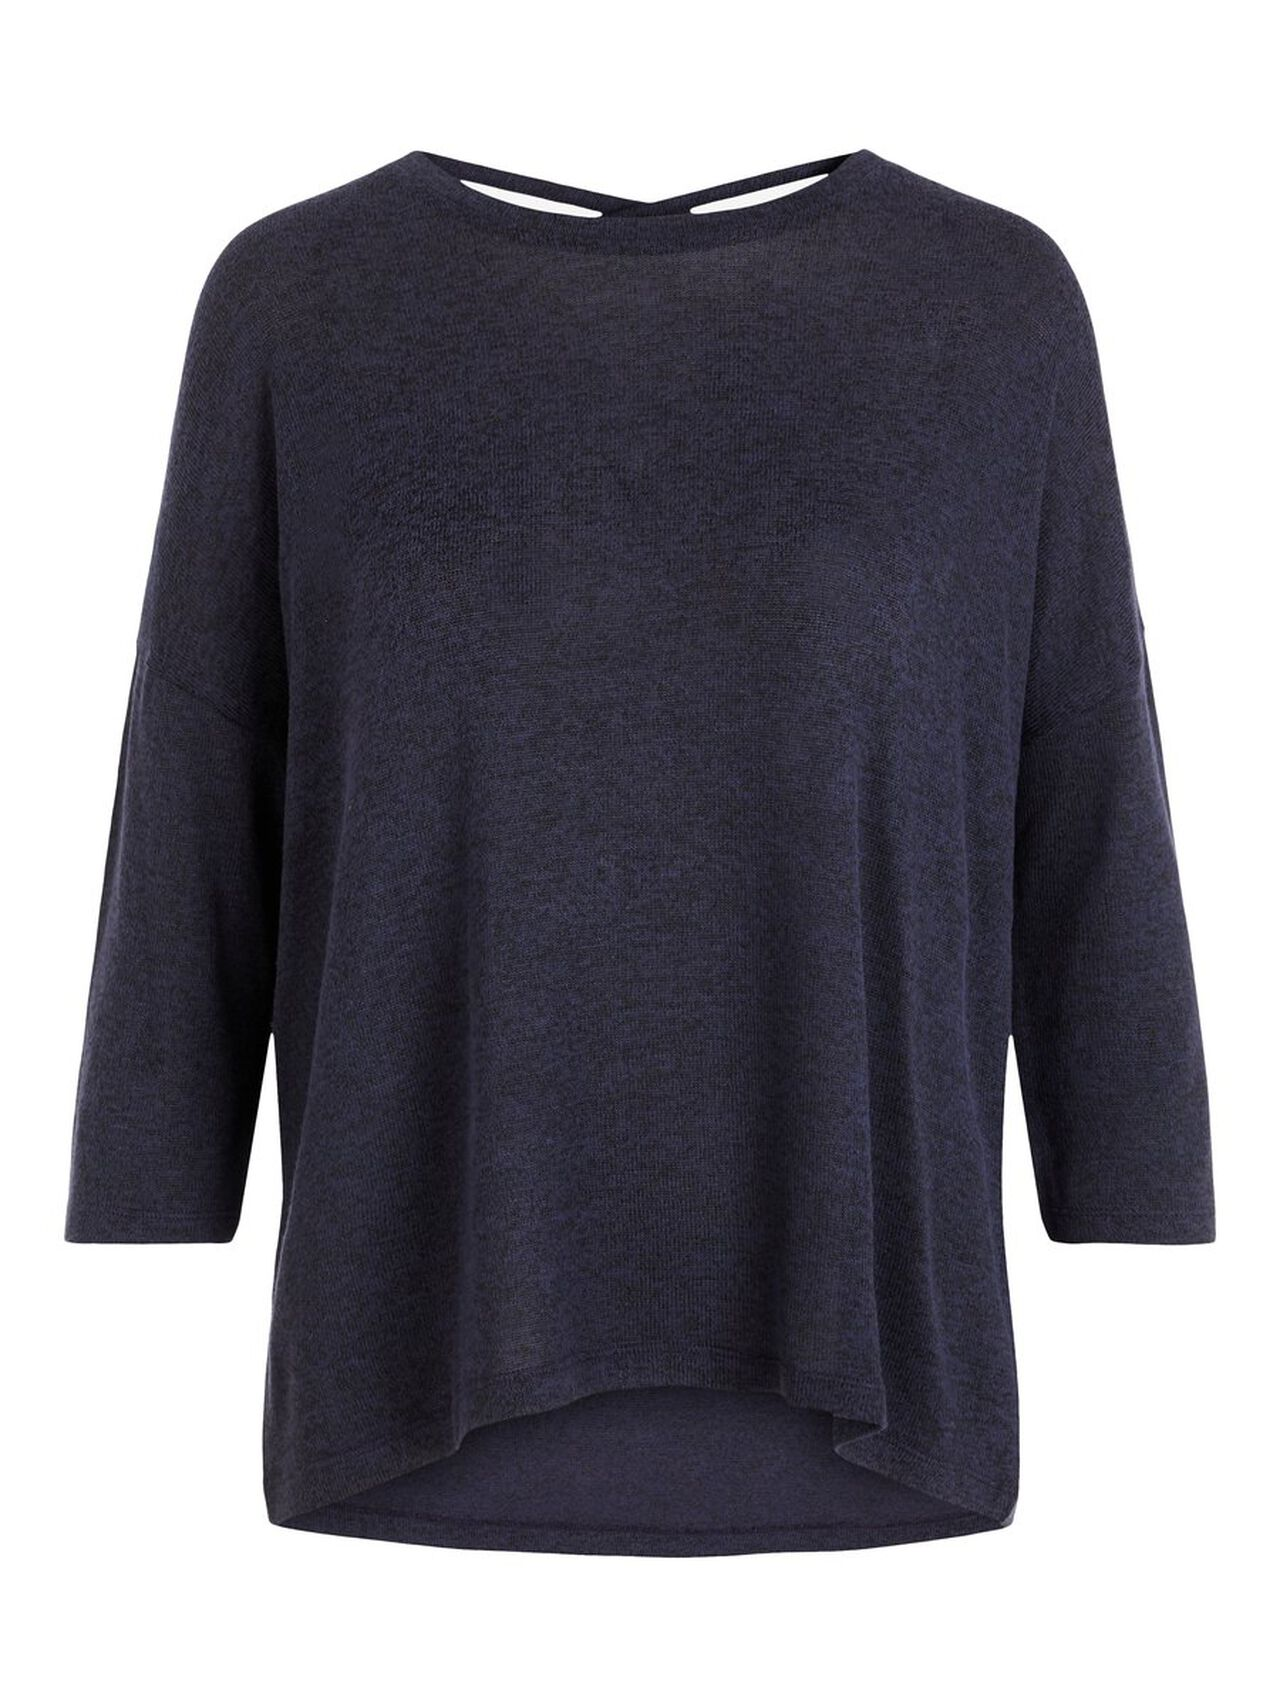 online store e17b0 dc4a5 VERO MODA OVERSIZED STRING KNITTED PULLOVER